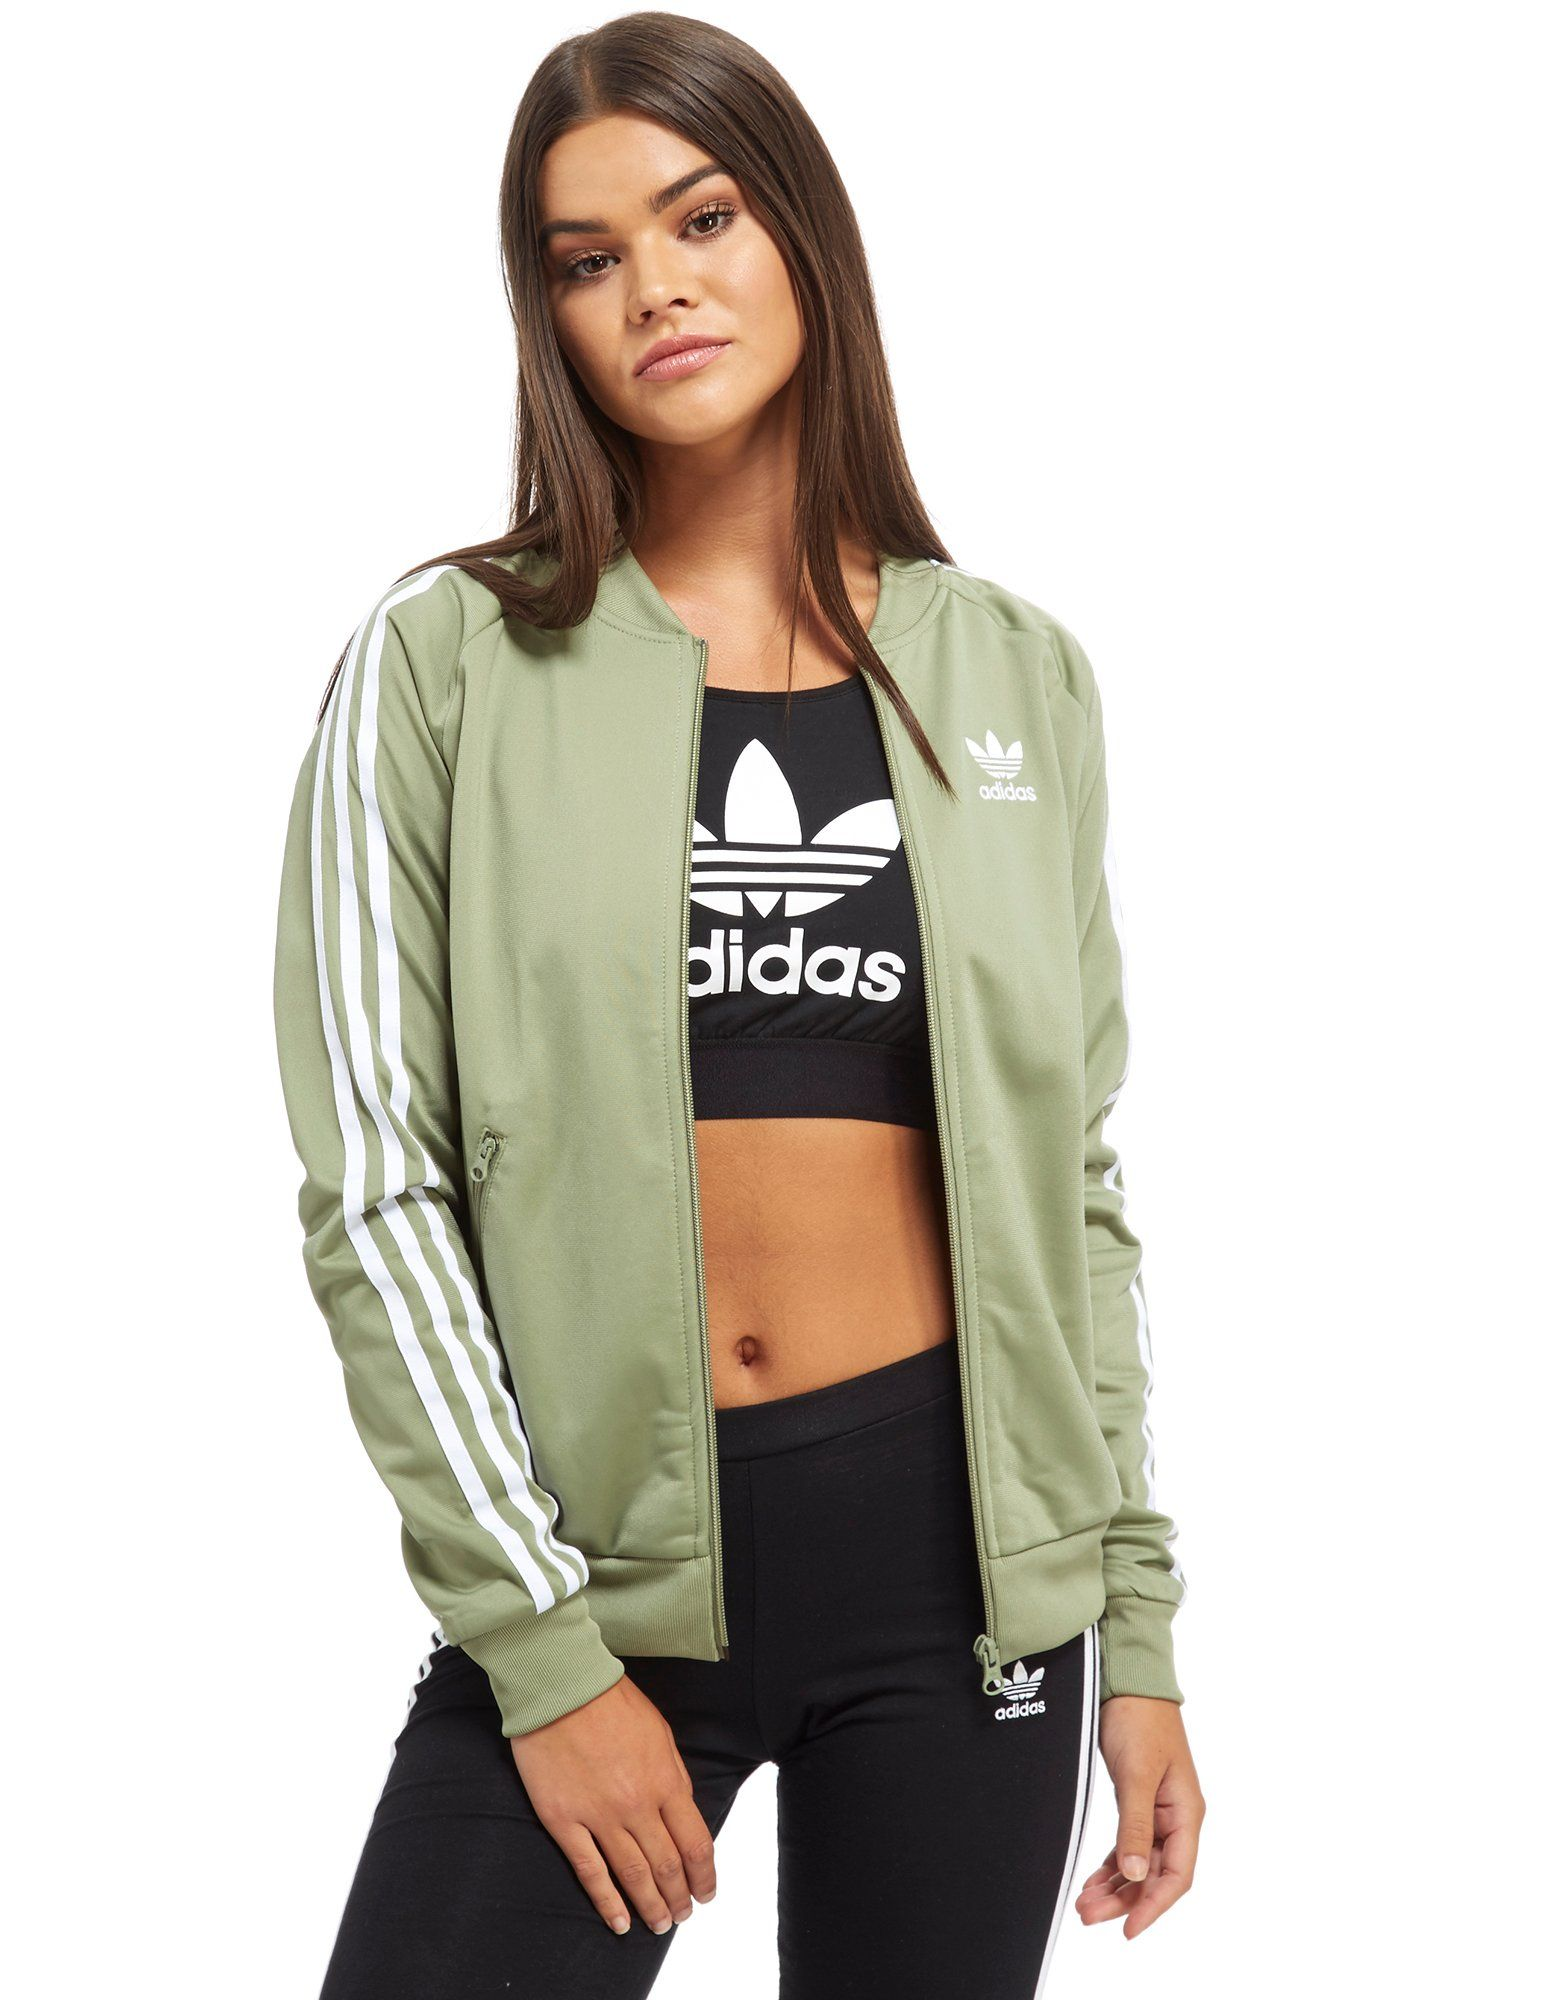 adidas sale clothing